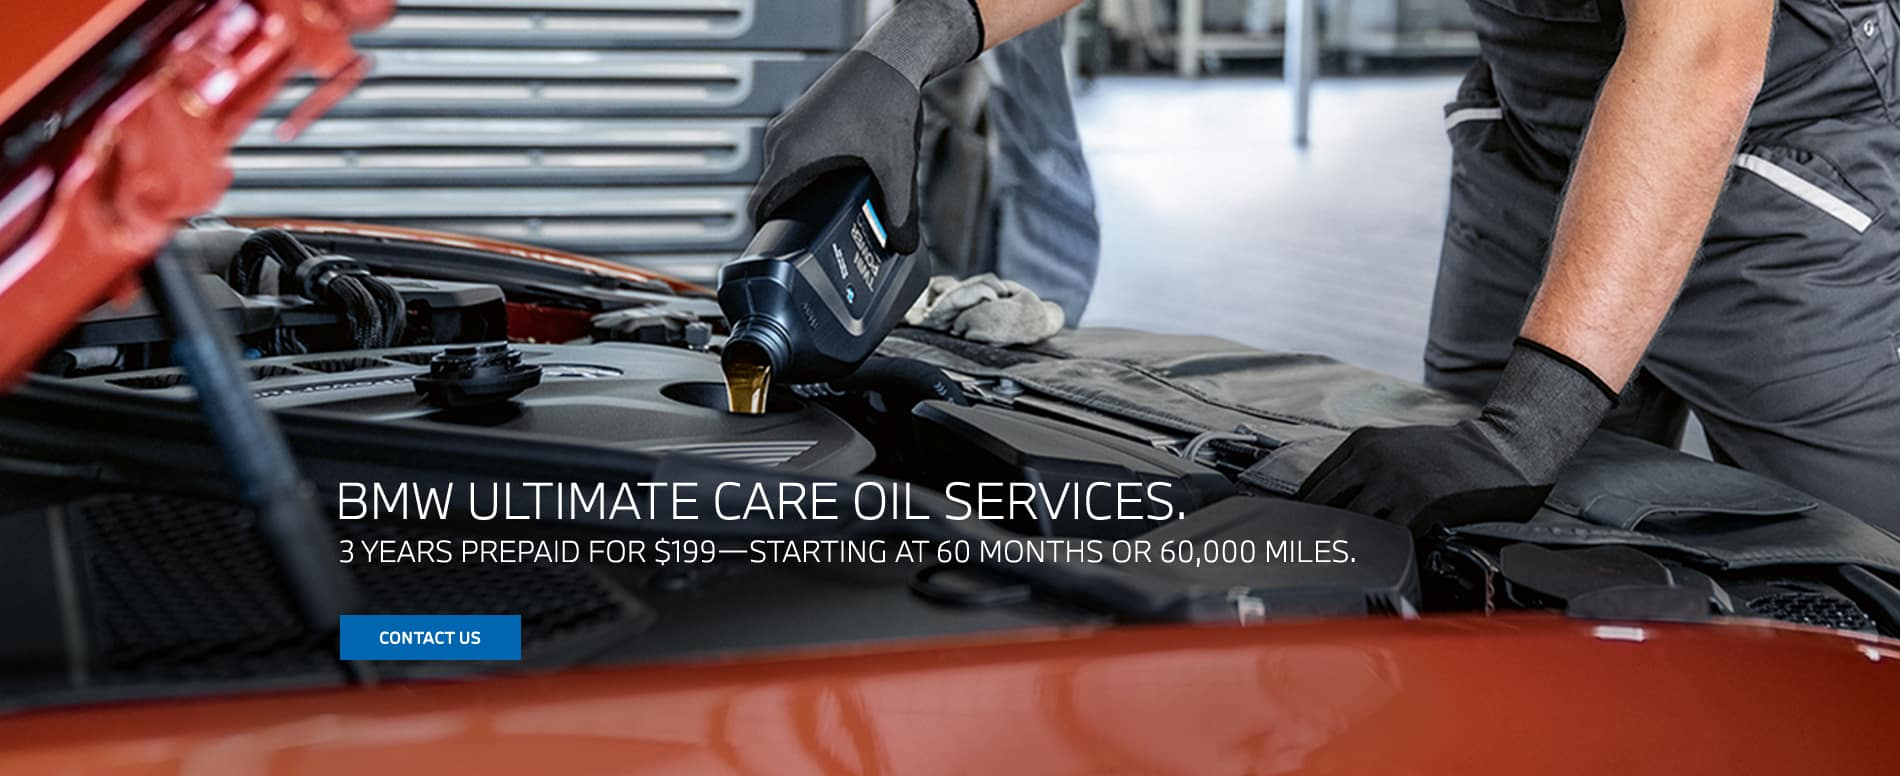 bmw ultimate oil change service for sale in los angeles